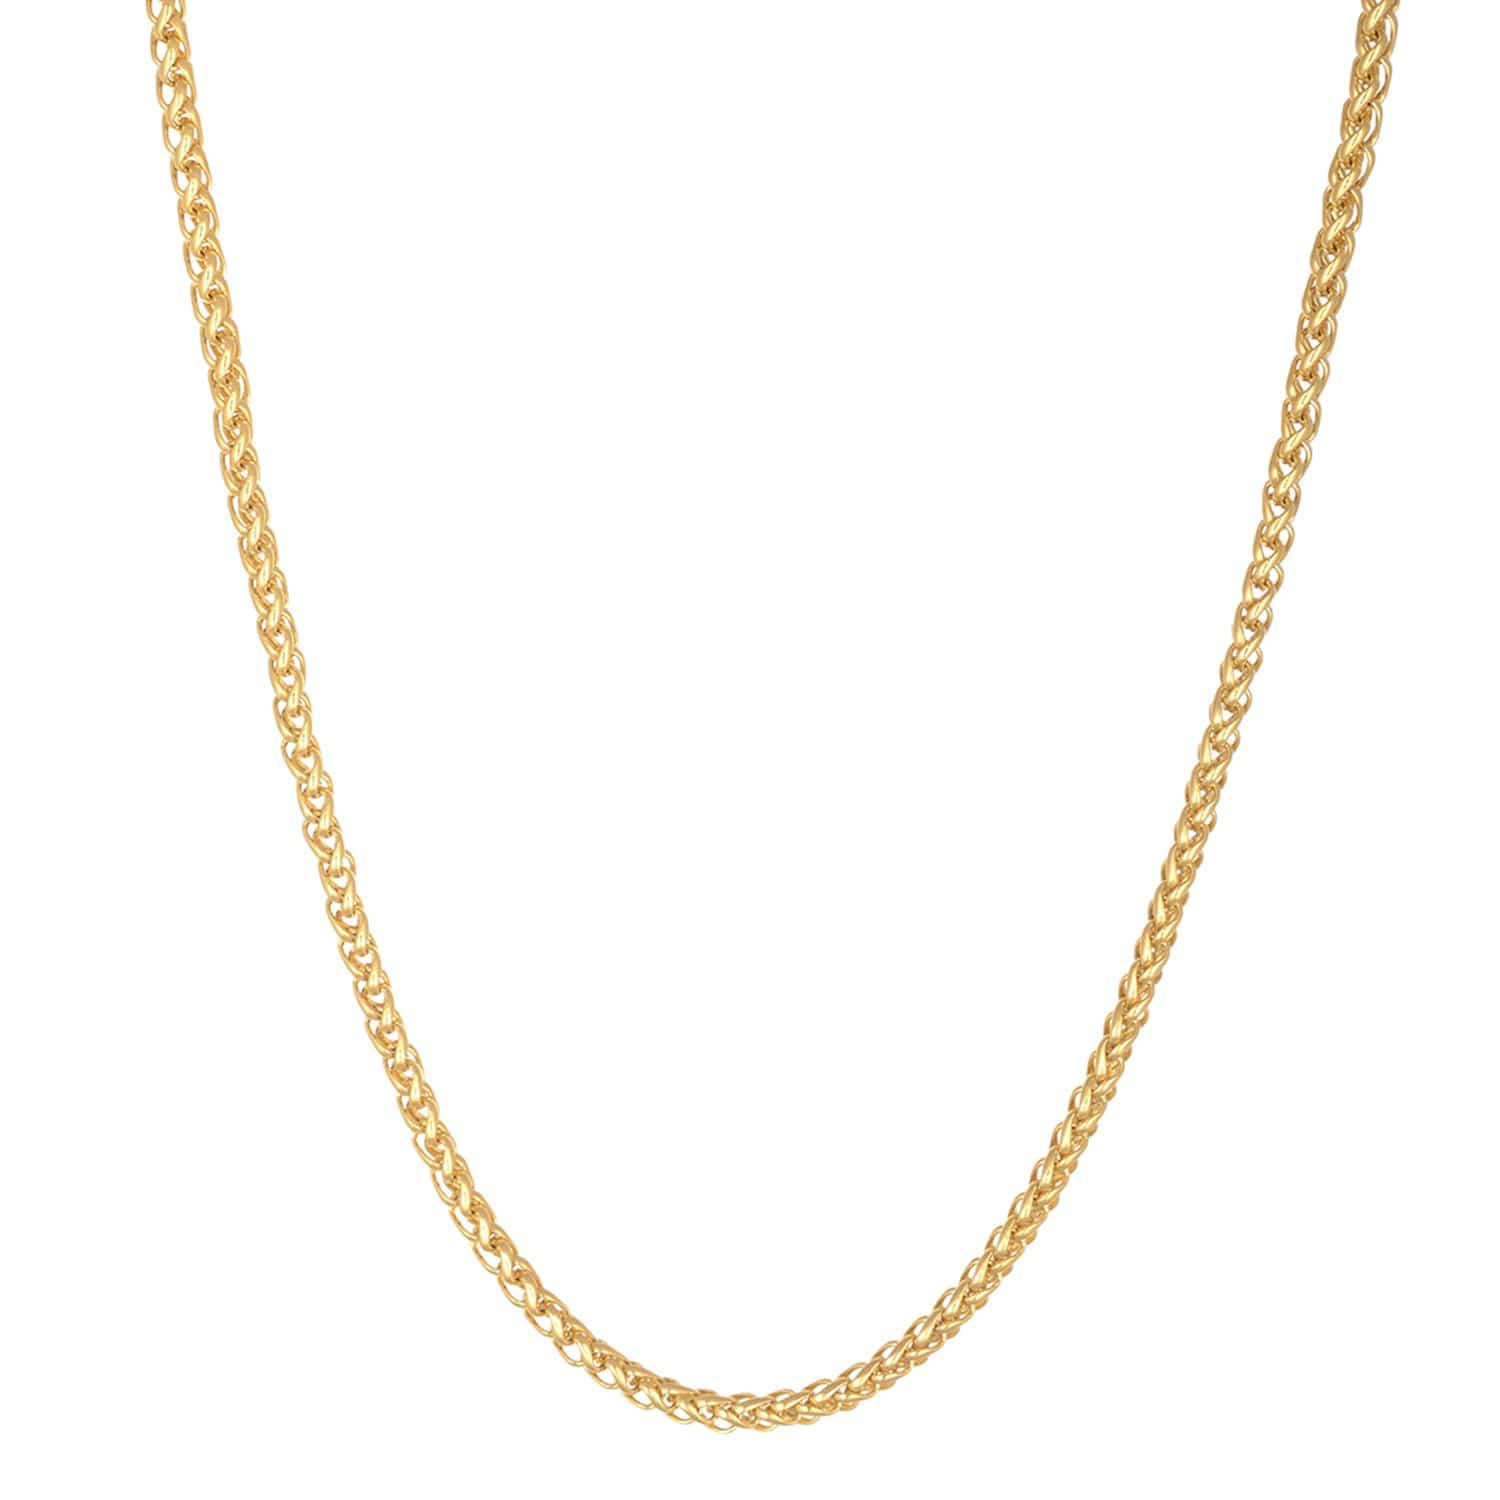 Gold Stainless Steel Polished 3.5 mm Round Wheat Chain Chains